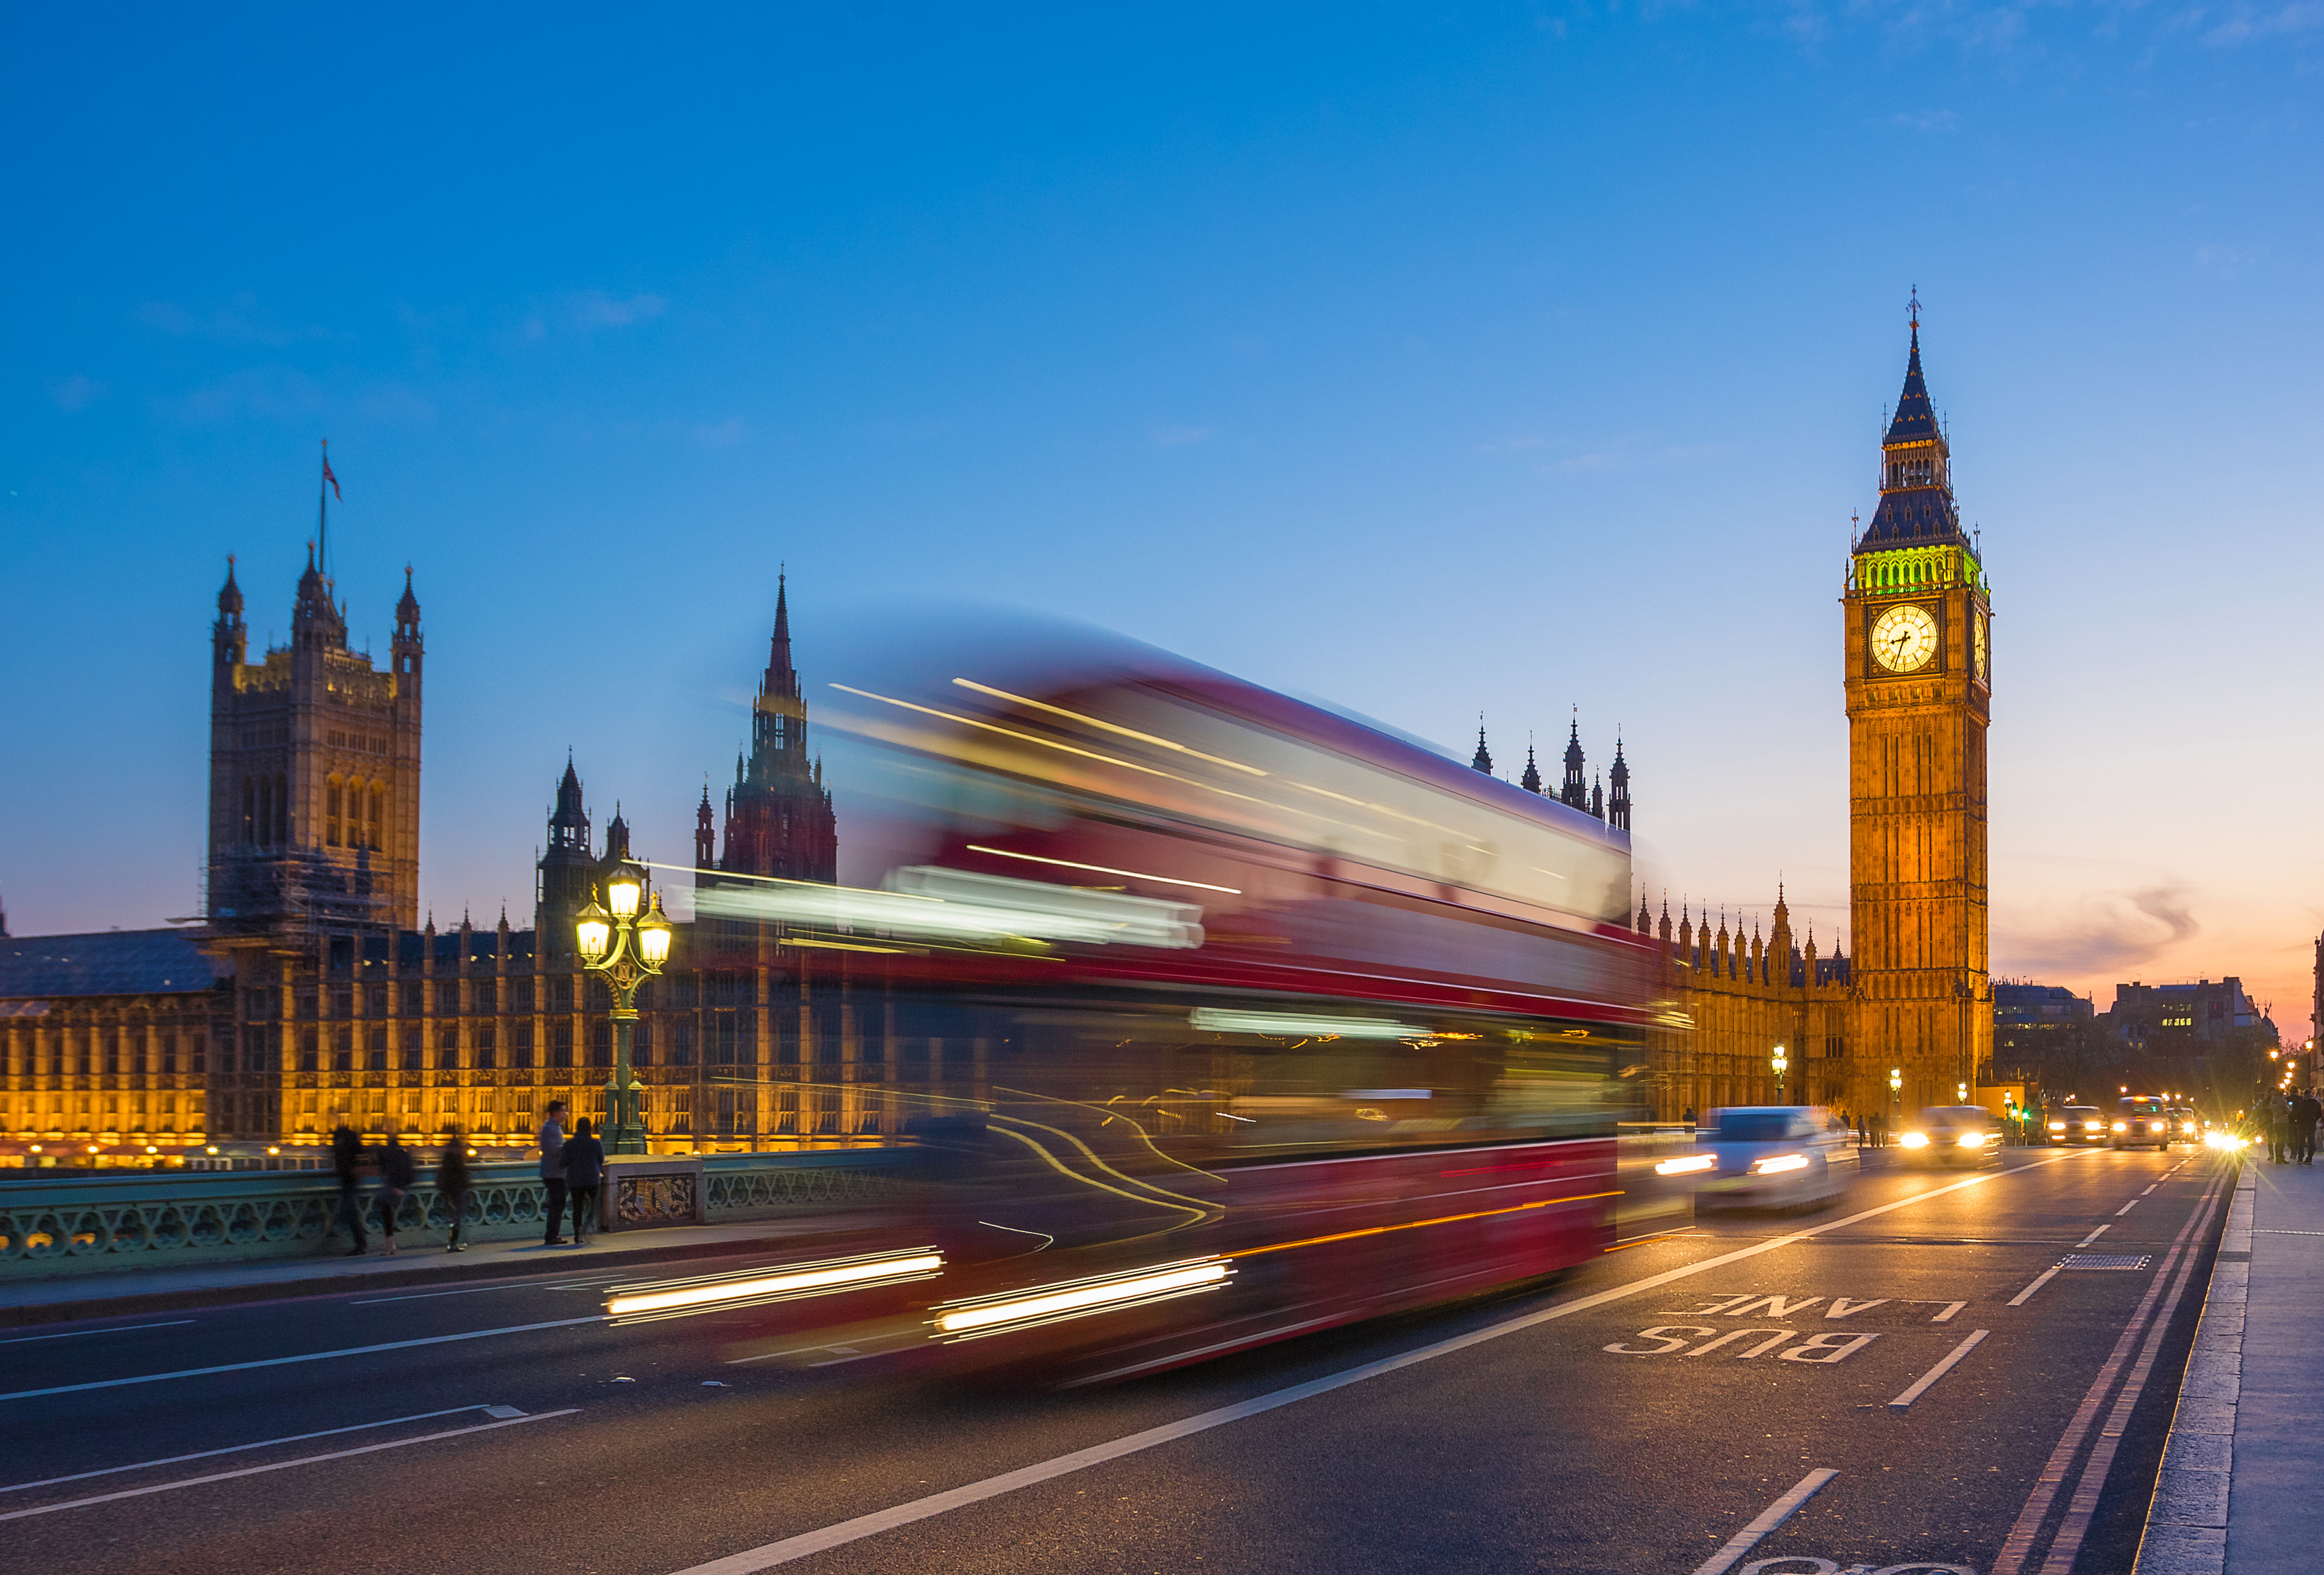 Iconic Double Decker bus with Big Ben and Parliament at blue hour, London, UK